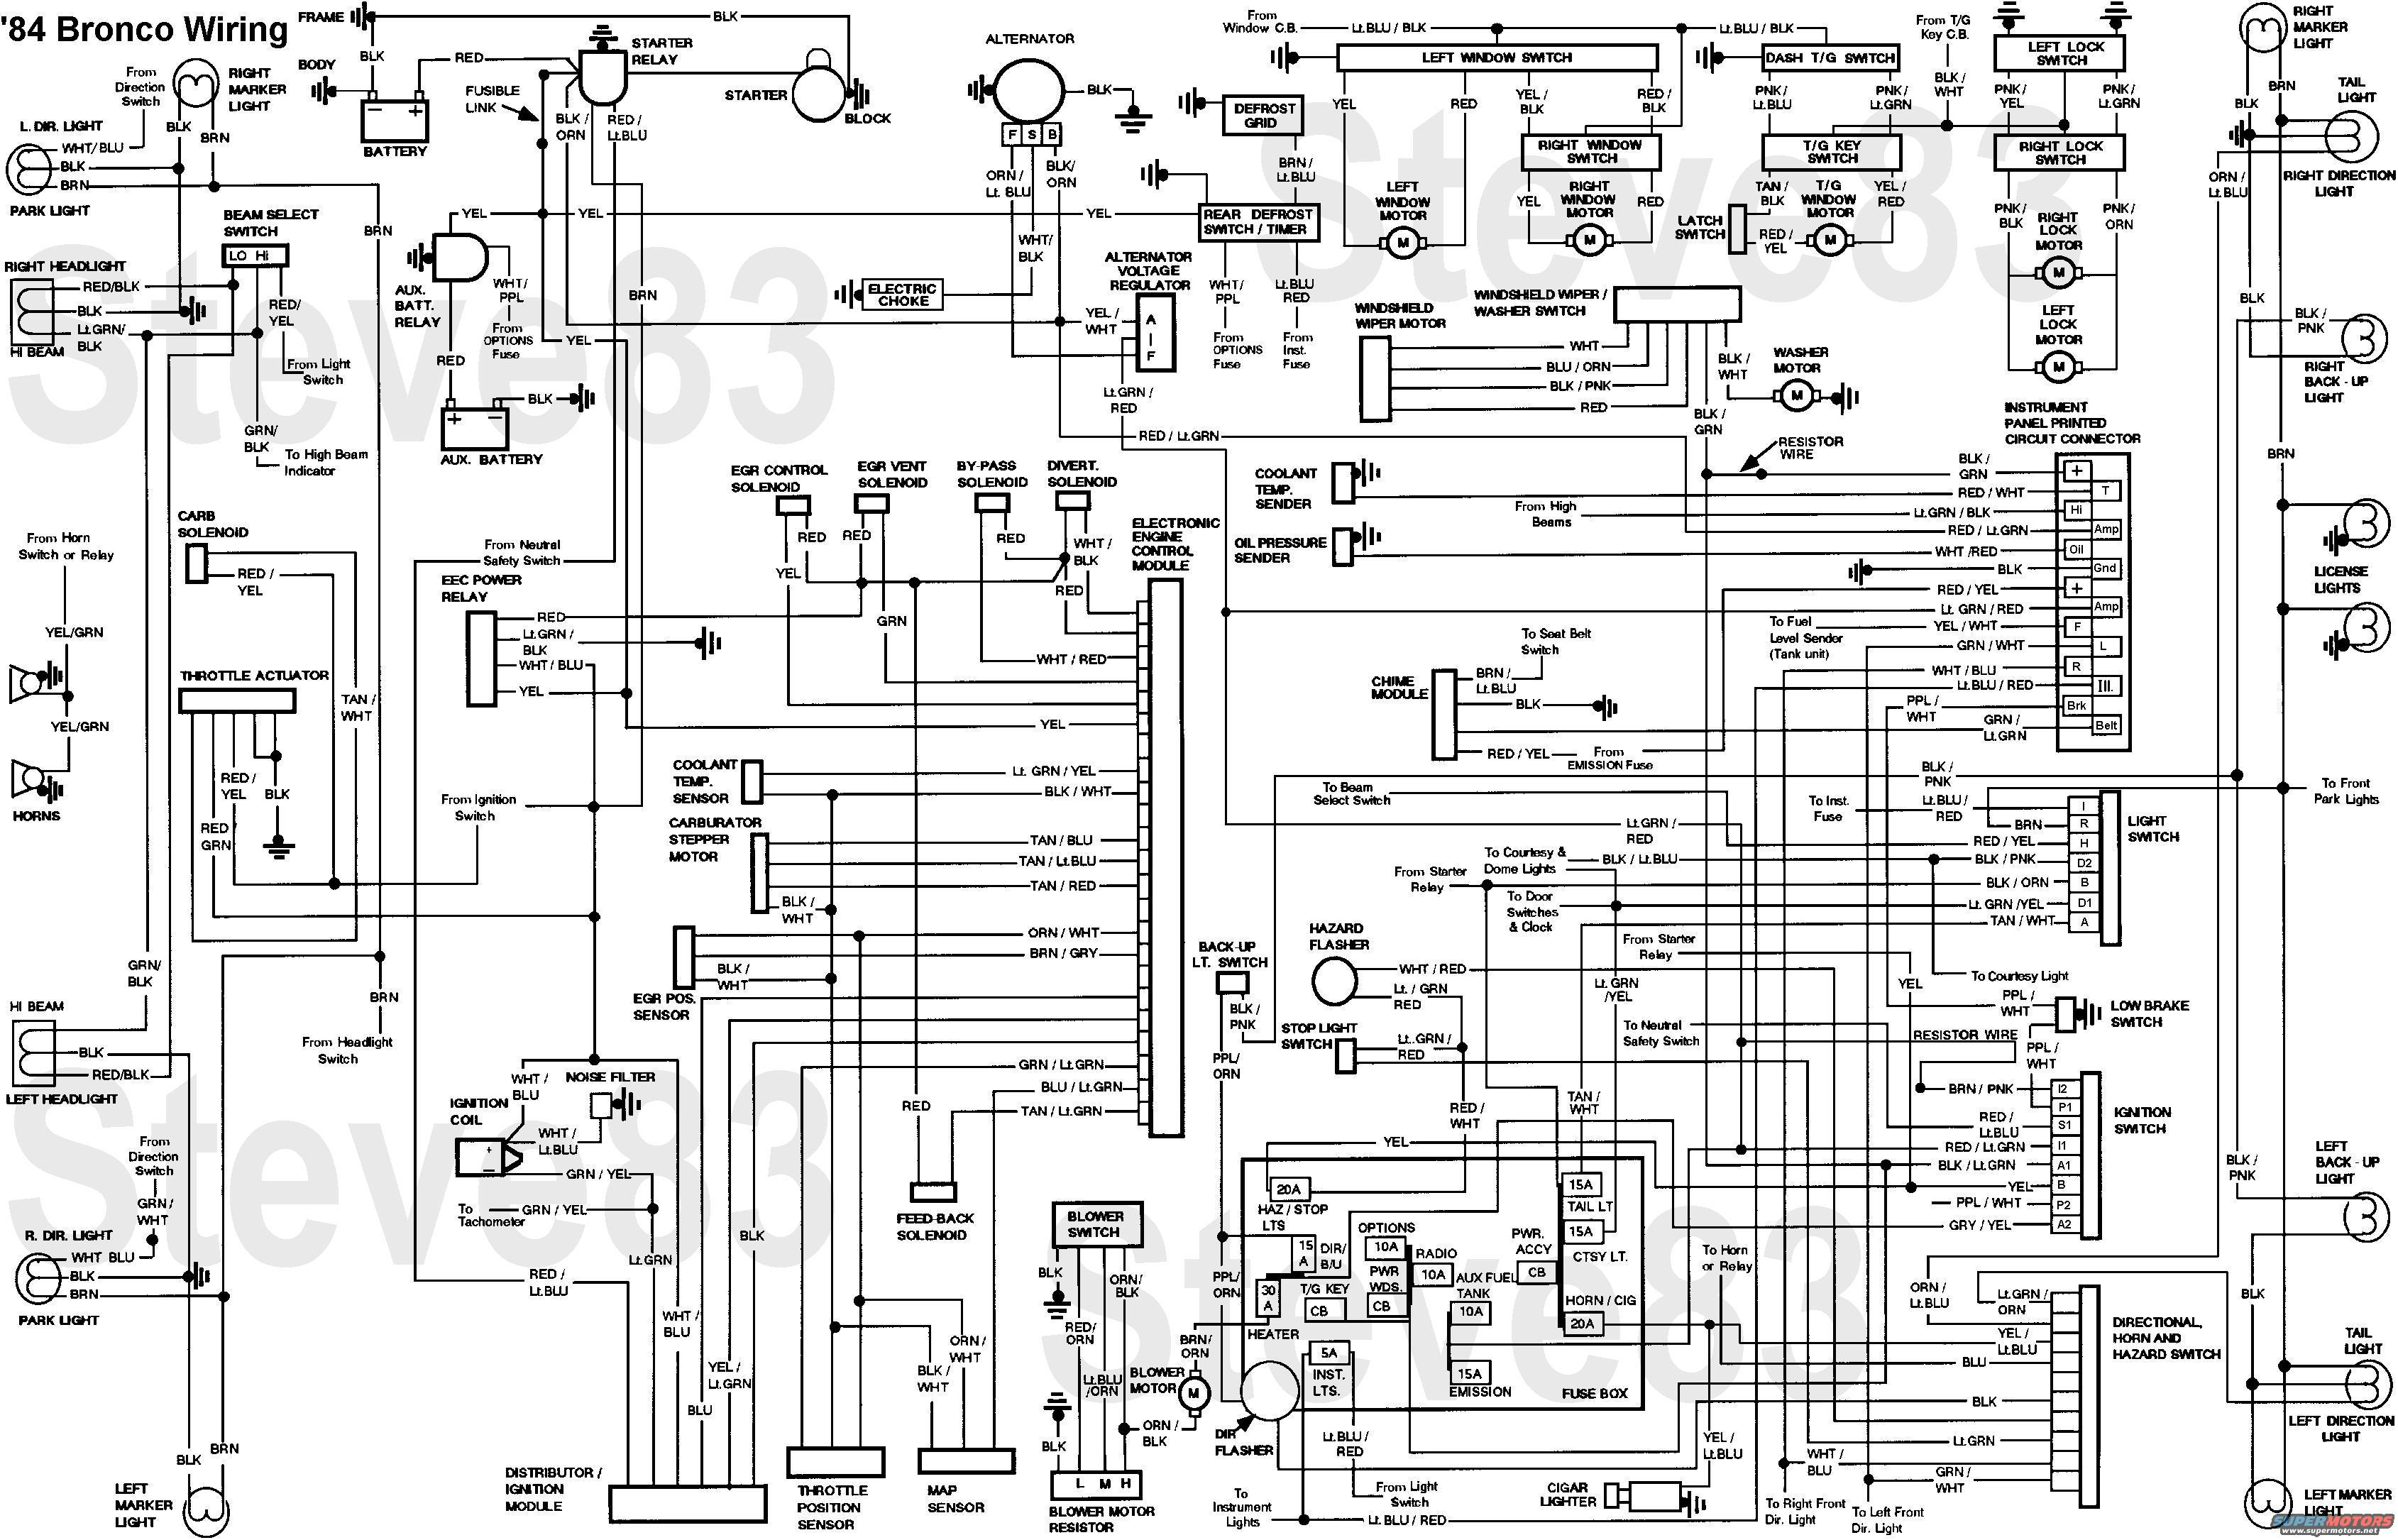 Wiring Diagram For 79 Ford Bronco